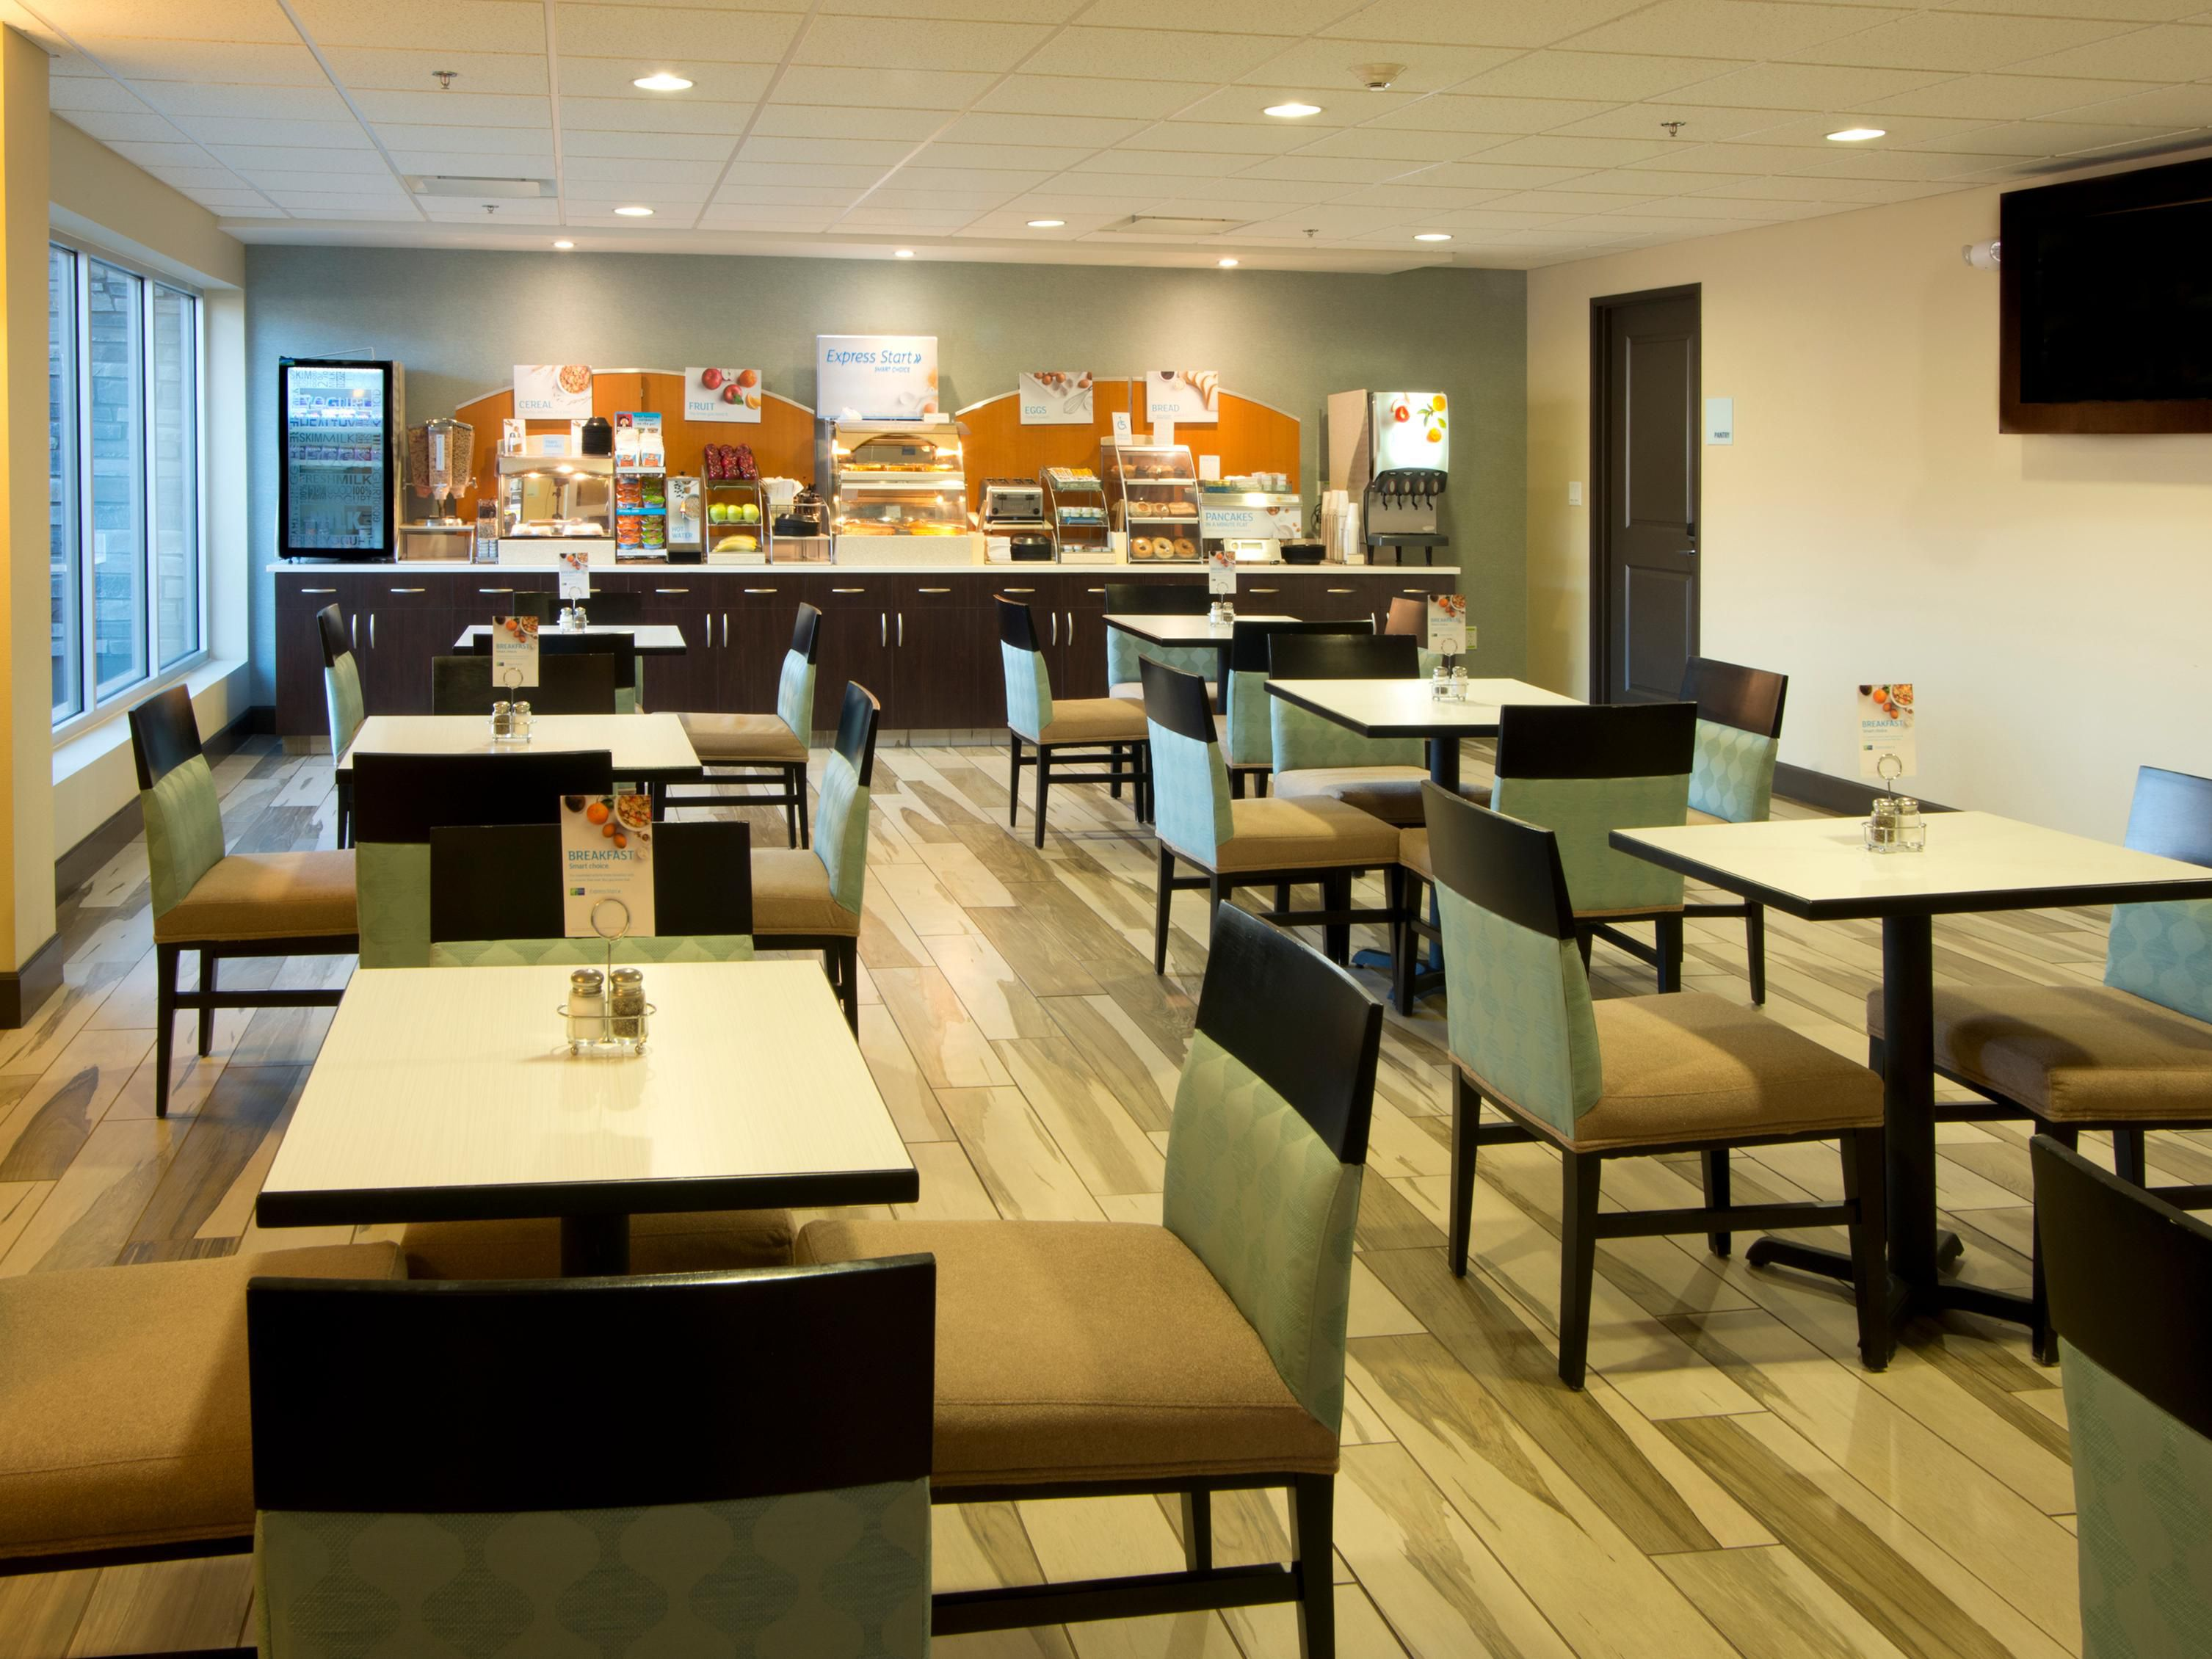 We can accommodate up to 44 people in our breakfast area